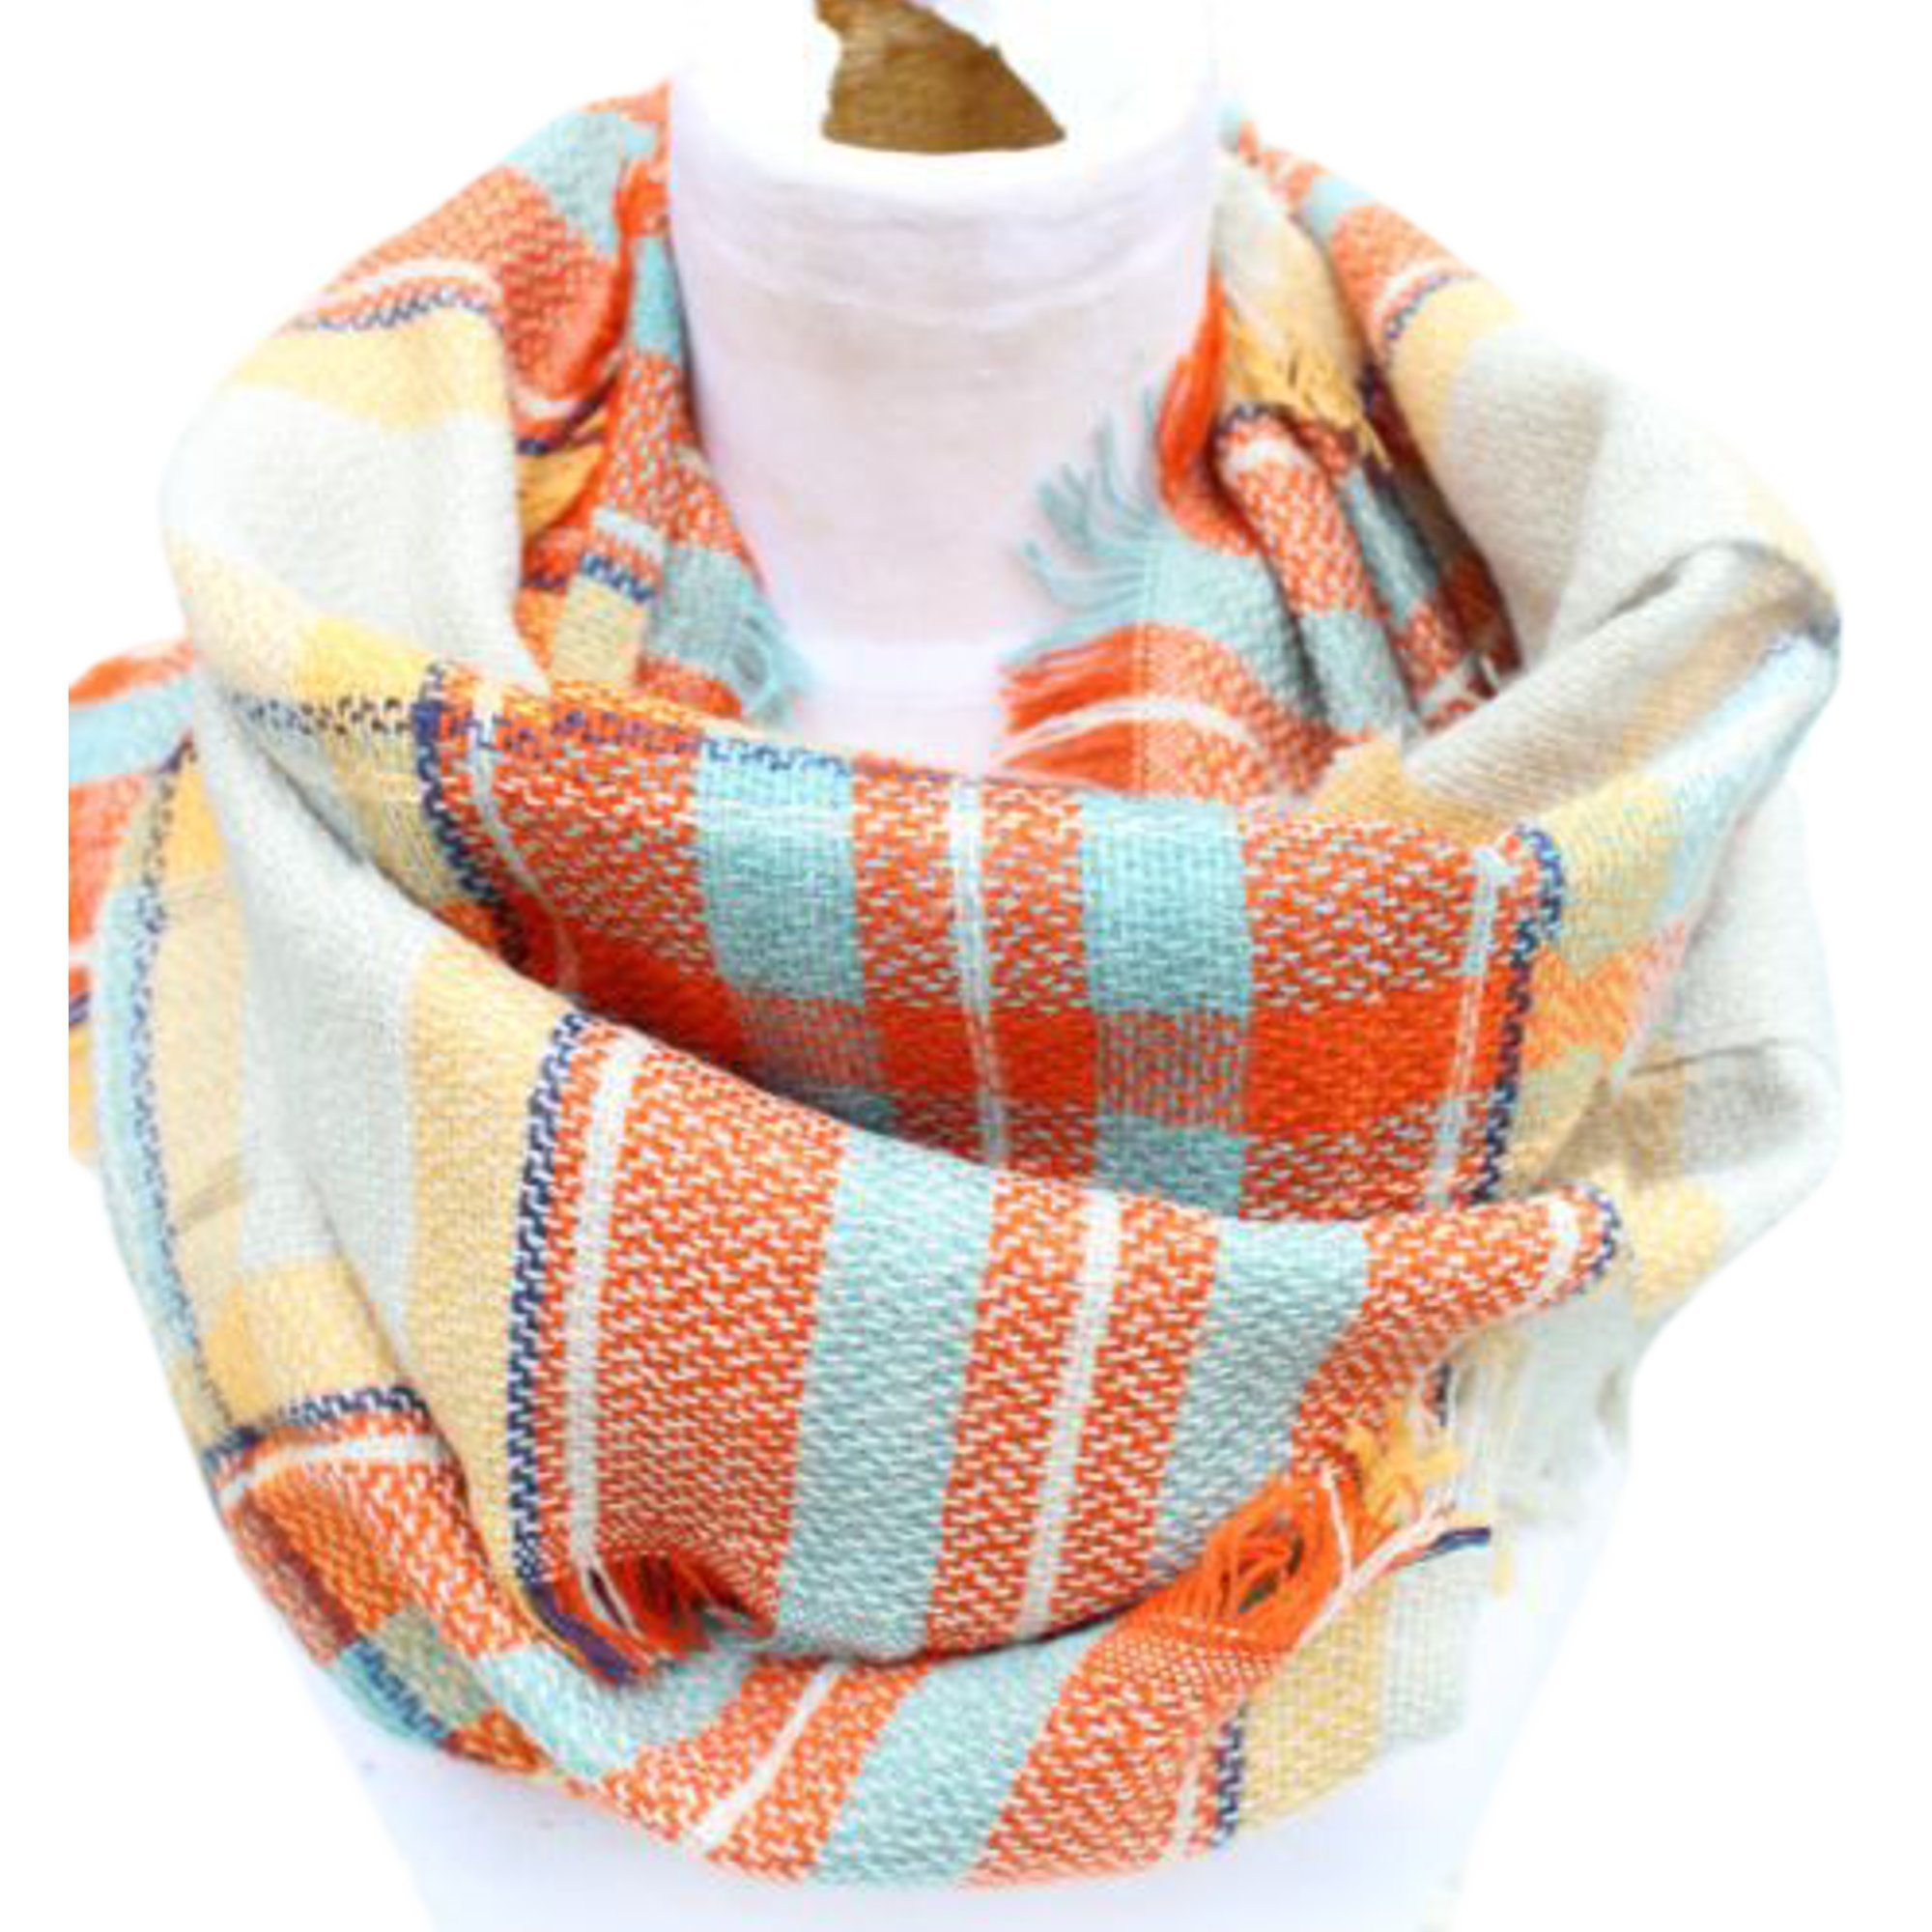 Epic Brand Infinity Scarf Collection for Men and Women   Comfortable Plaid Tartan Cashmere Blanket Circle Winter Scarves (Plaid Orange/Beige)